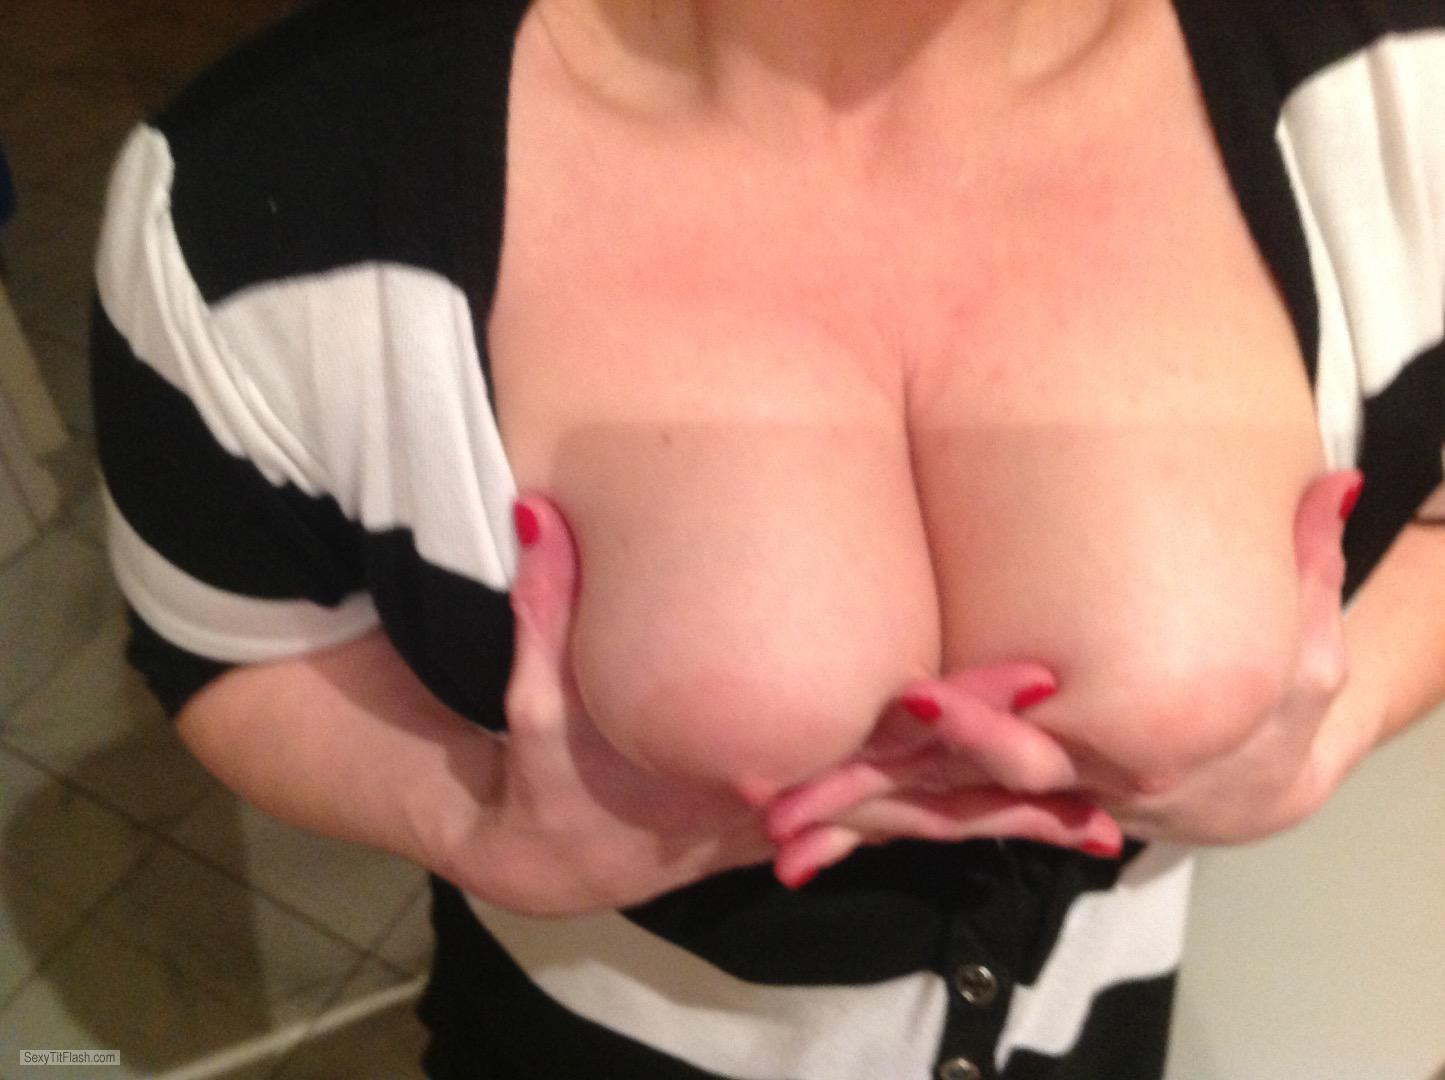 Tit Flash: My Big Tits (Selfie) - Big Cum Tits from United Kingdom